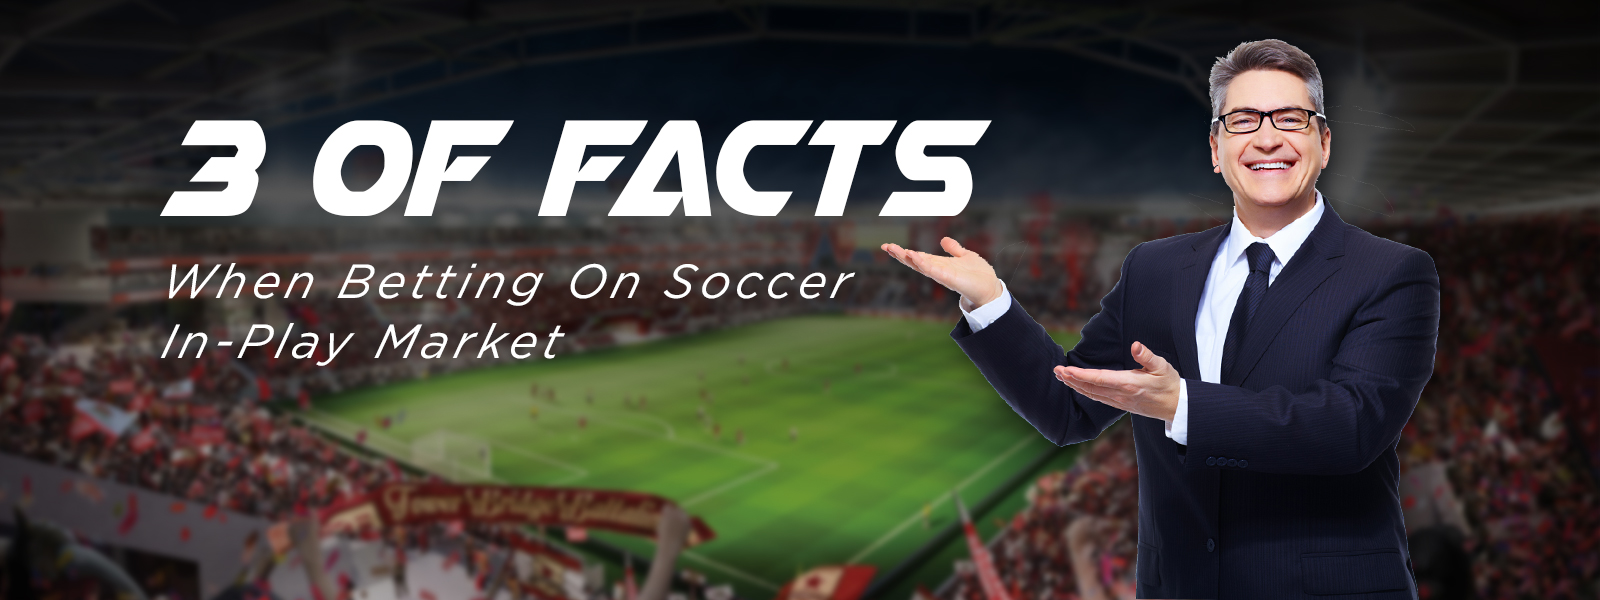 3 Facts When Betting On Soccer In-Play Market